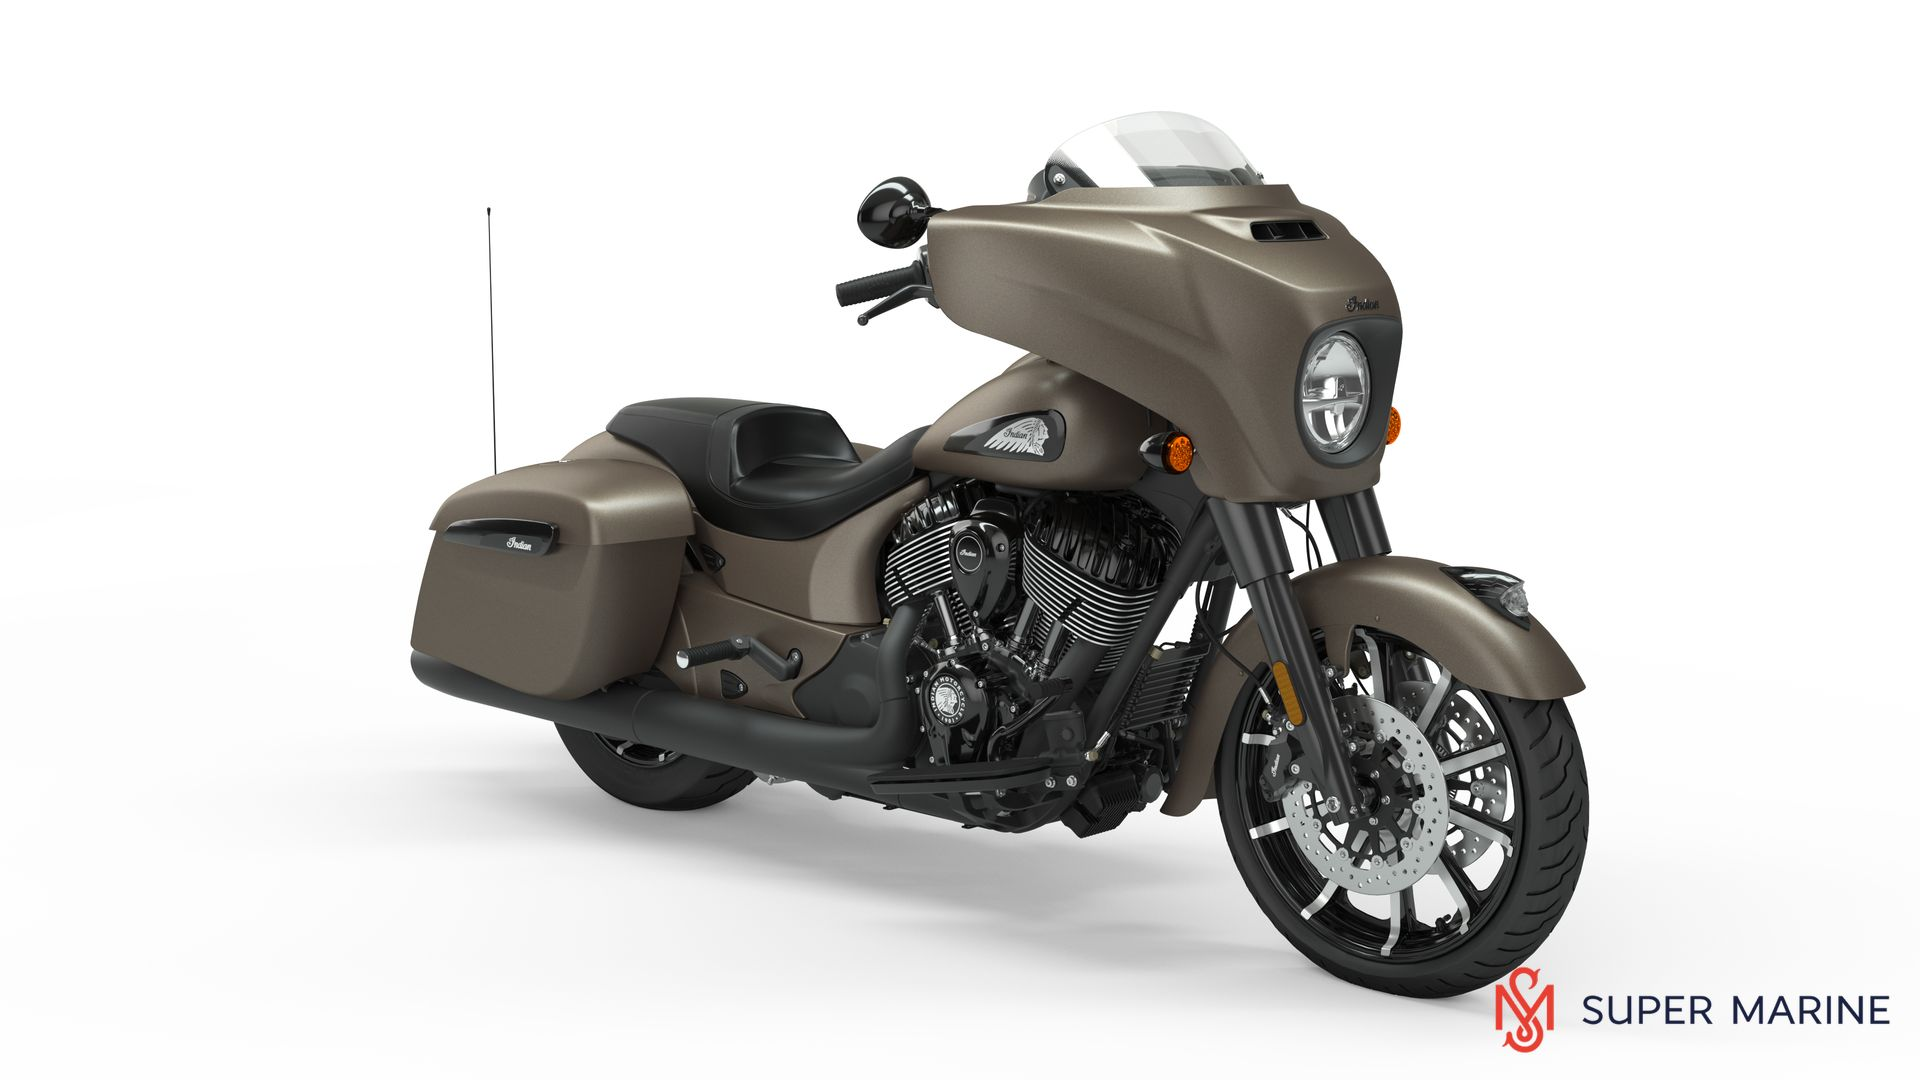 Мотоцикл Indian Chieftain Dark Horse Bronze Smoke 2019 - 8